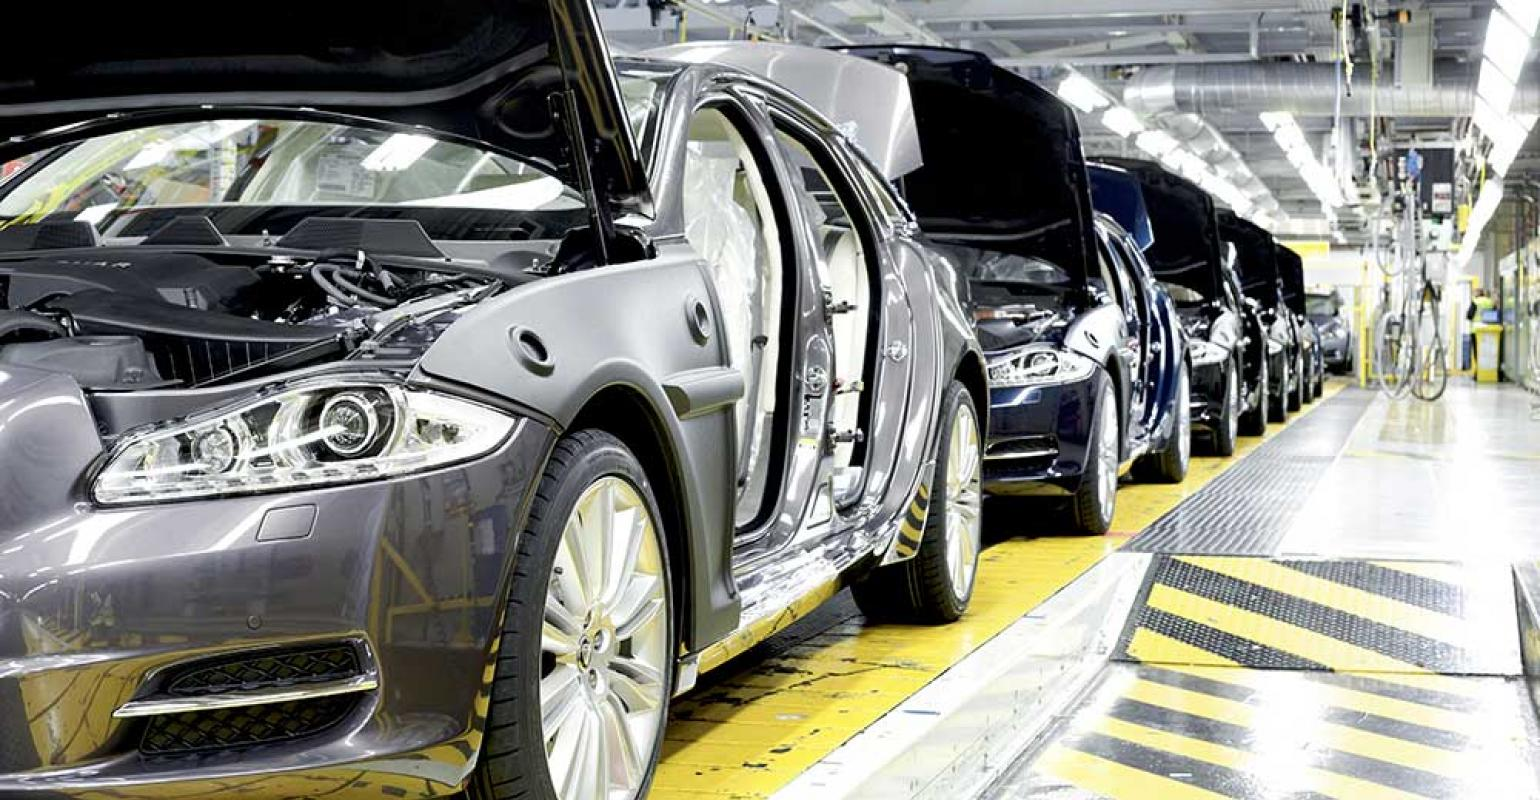 Vehicle Manufacturers In The Uk Auto Industry Back On Solid Ground In U K Insiders Say